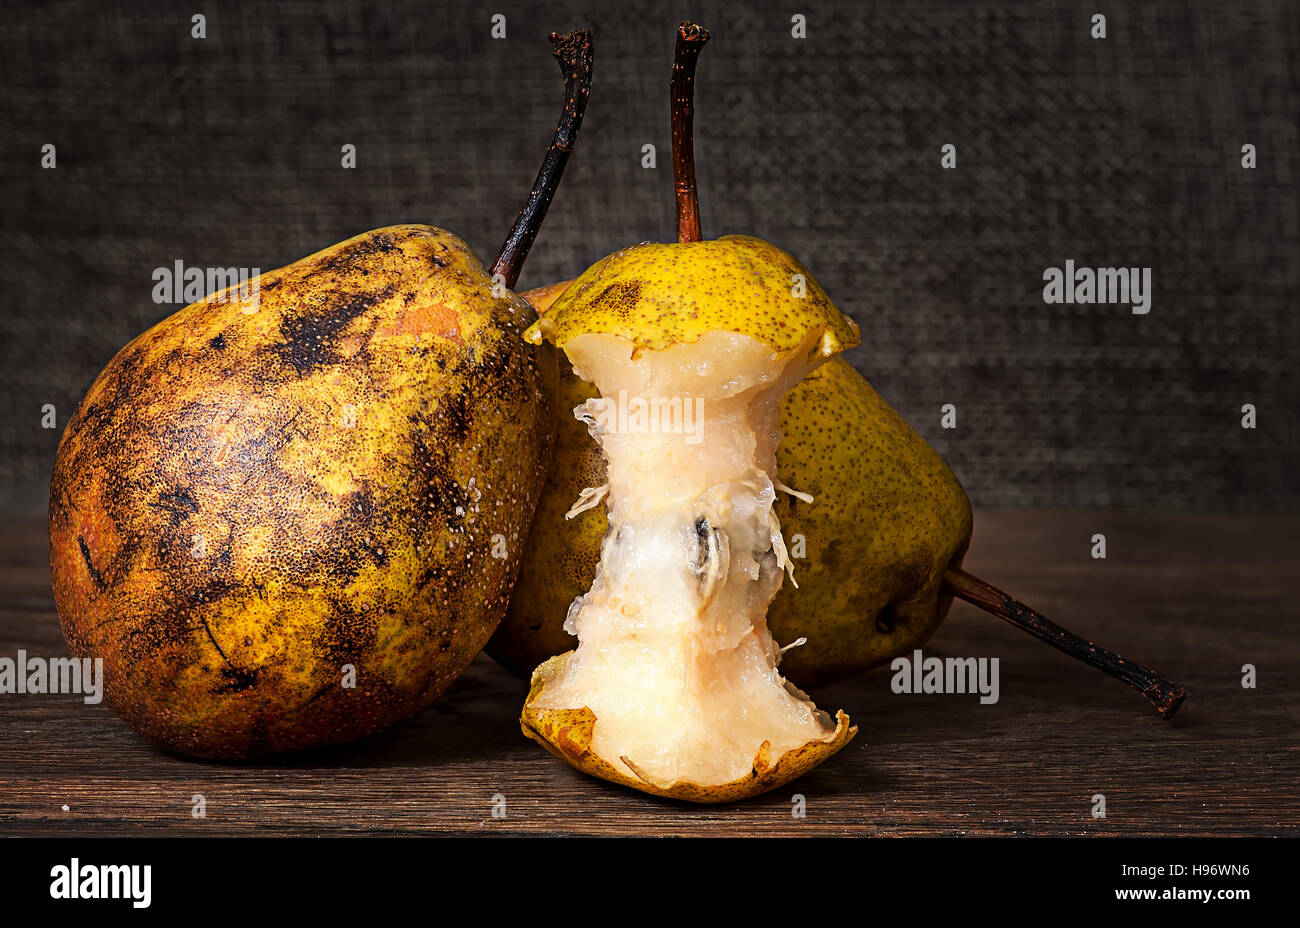 Two pears and stub standing on wooden table background sacking - Stock Image